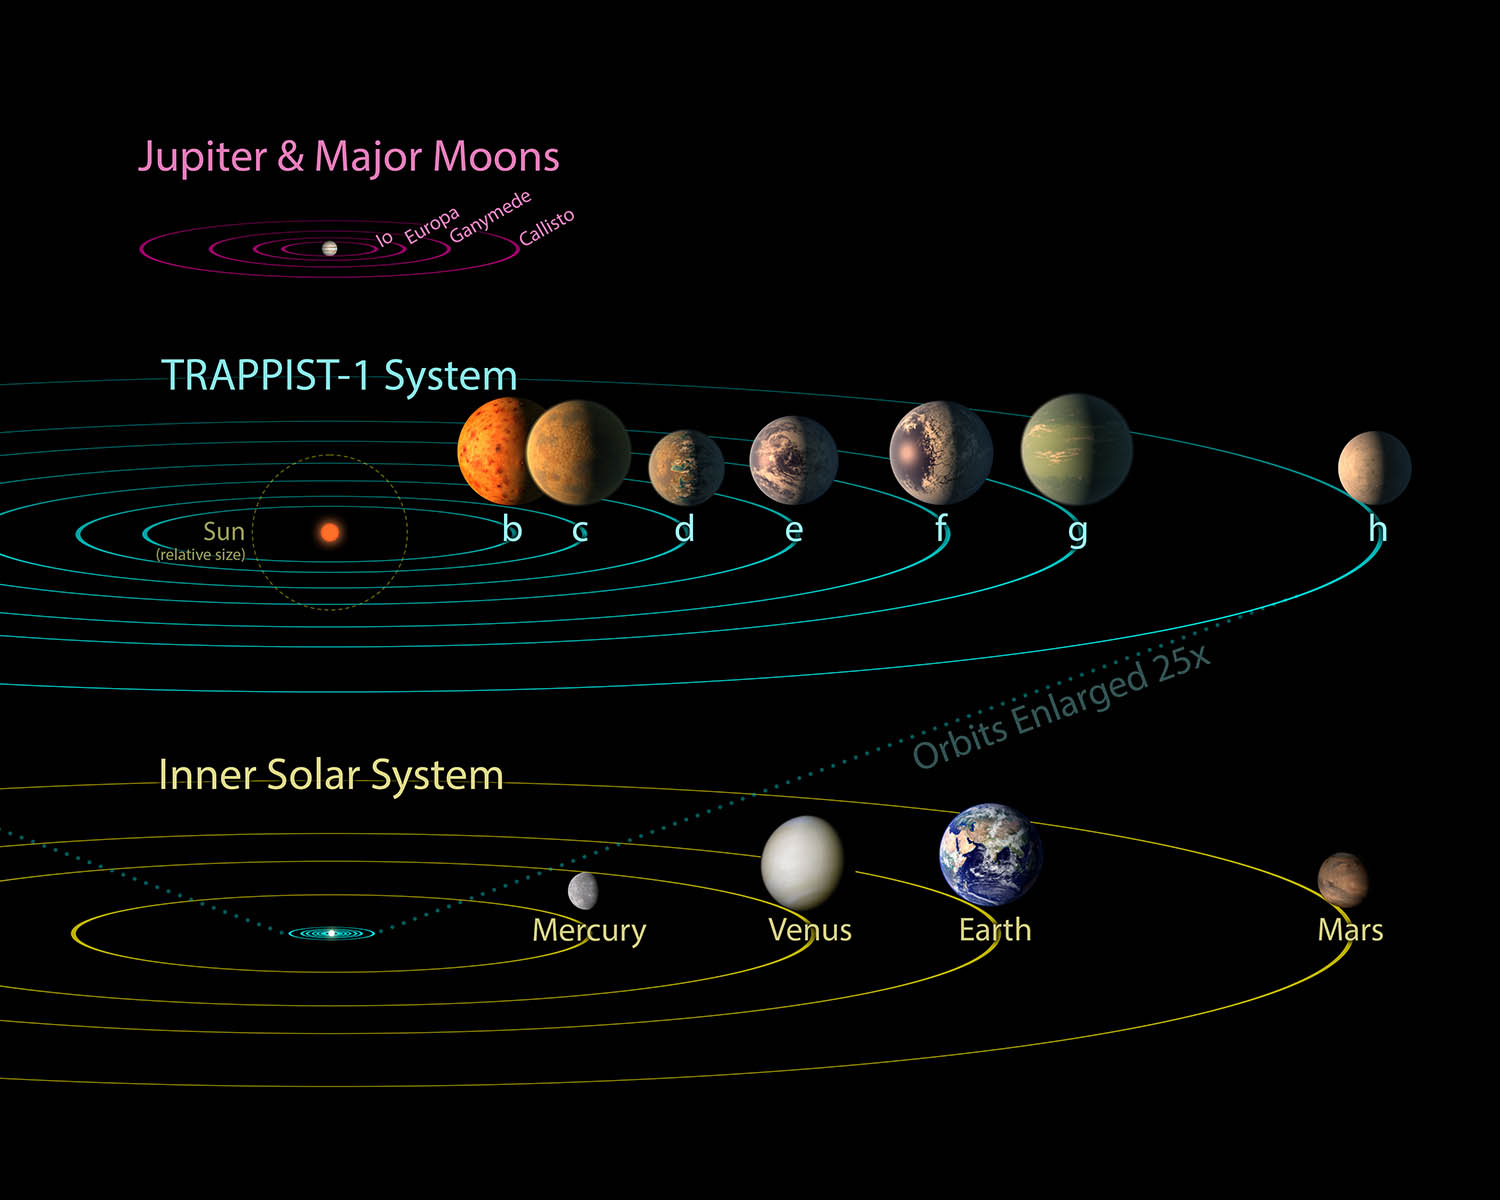 what causes the planets and moons in our solar system to orbit the sun -#main